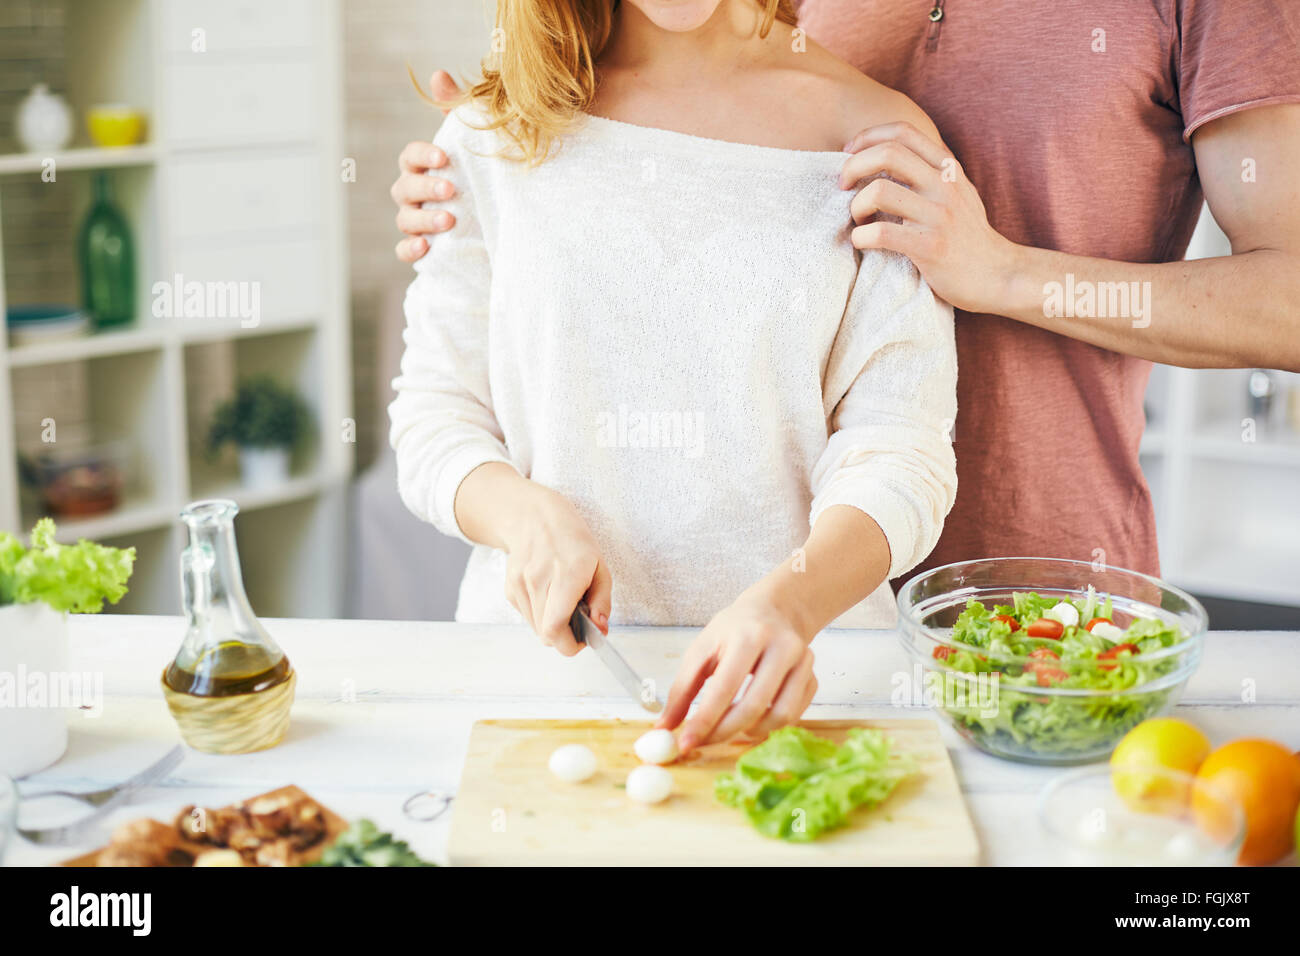 Young housewife cutting cheese for salad while her husband embracing her - Stock Image